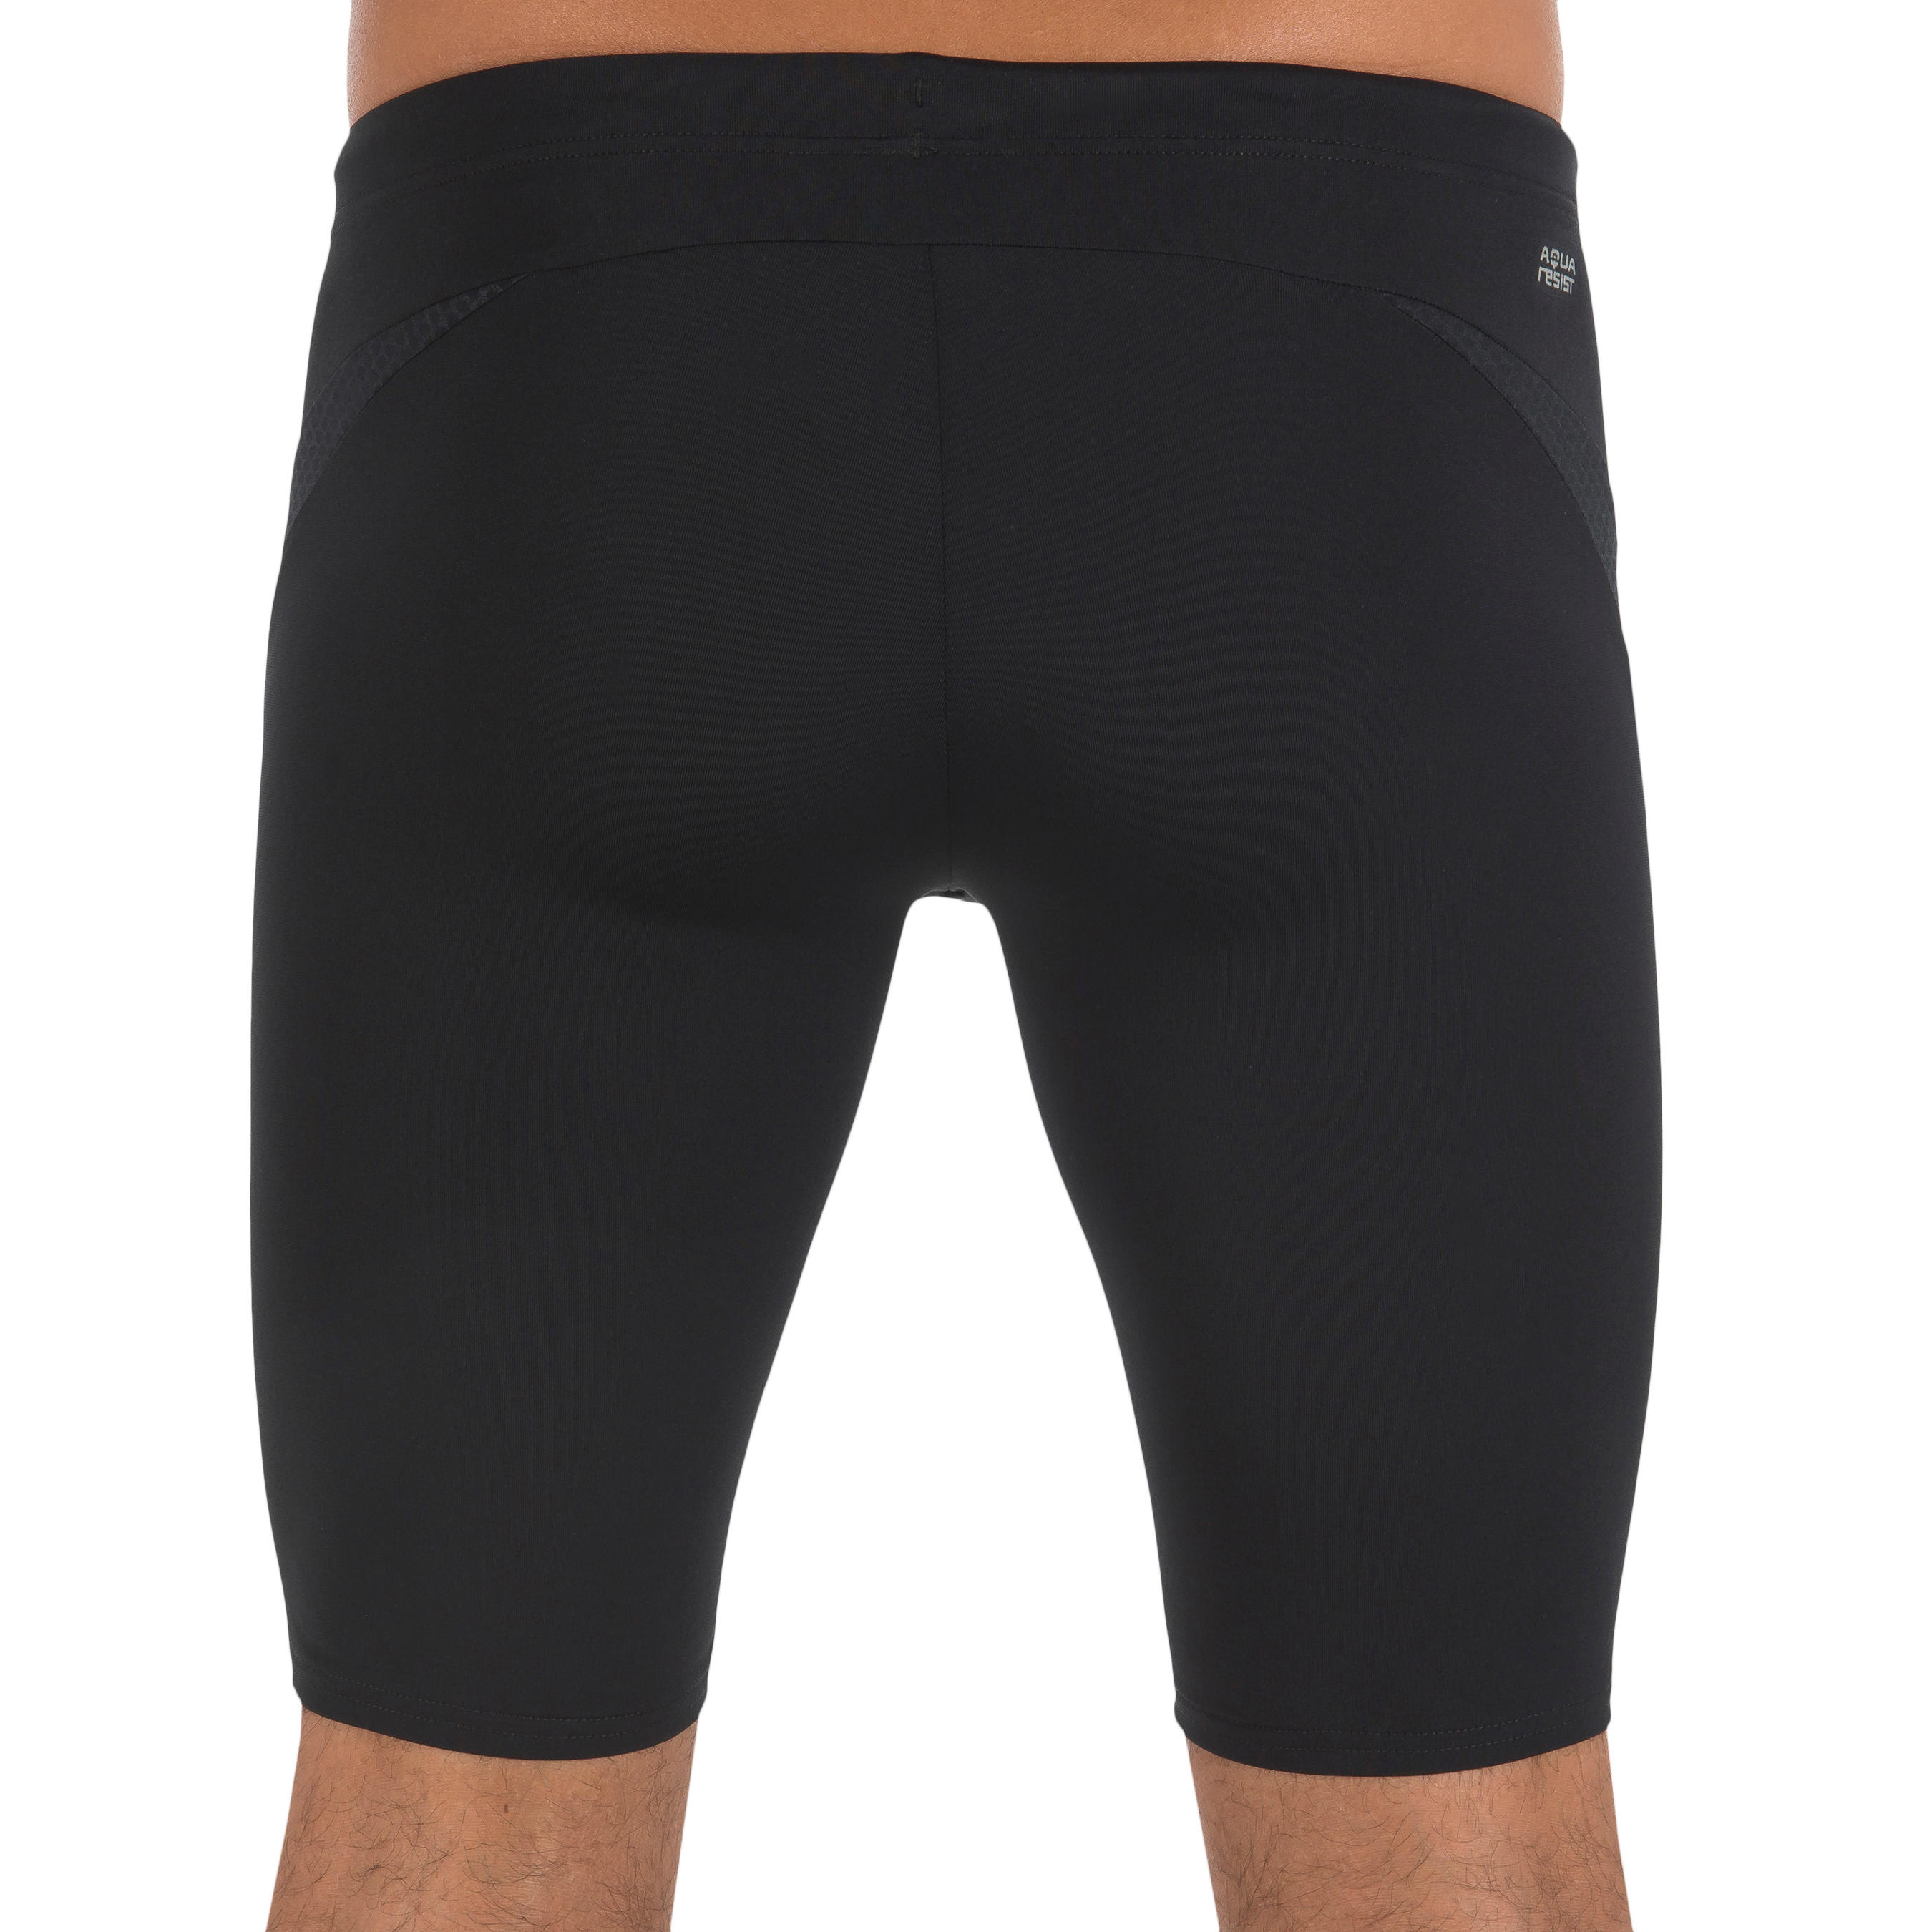 BLACK DOT FIRST 500 MEN'S JAMMER SWIMWEAR